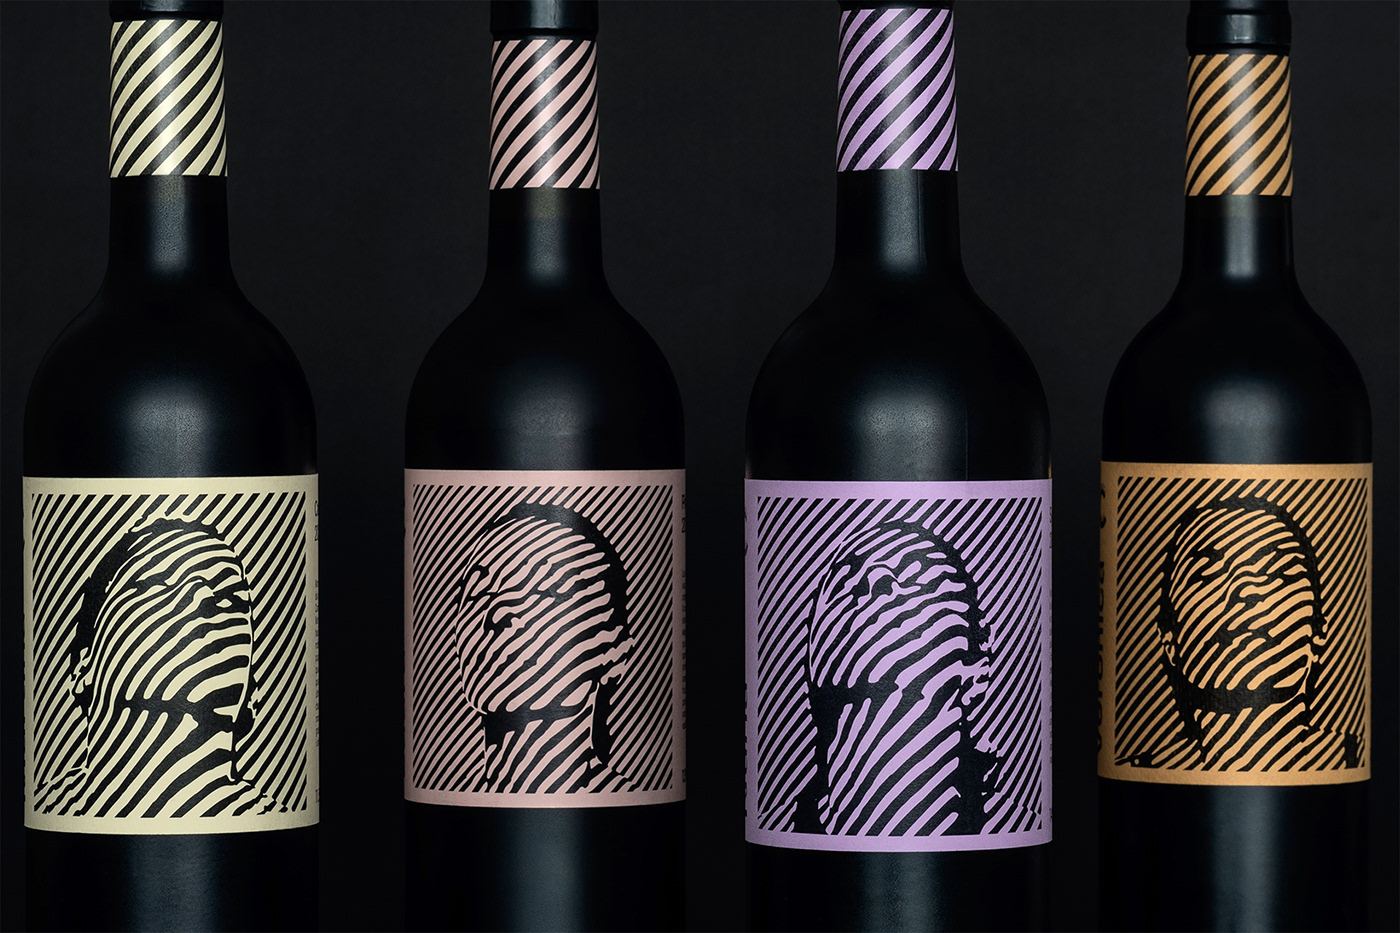 Casa Cardona wines. Group shot of the label artwork portraits